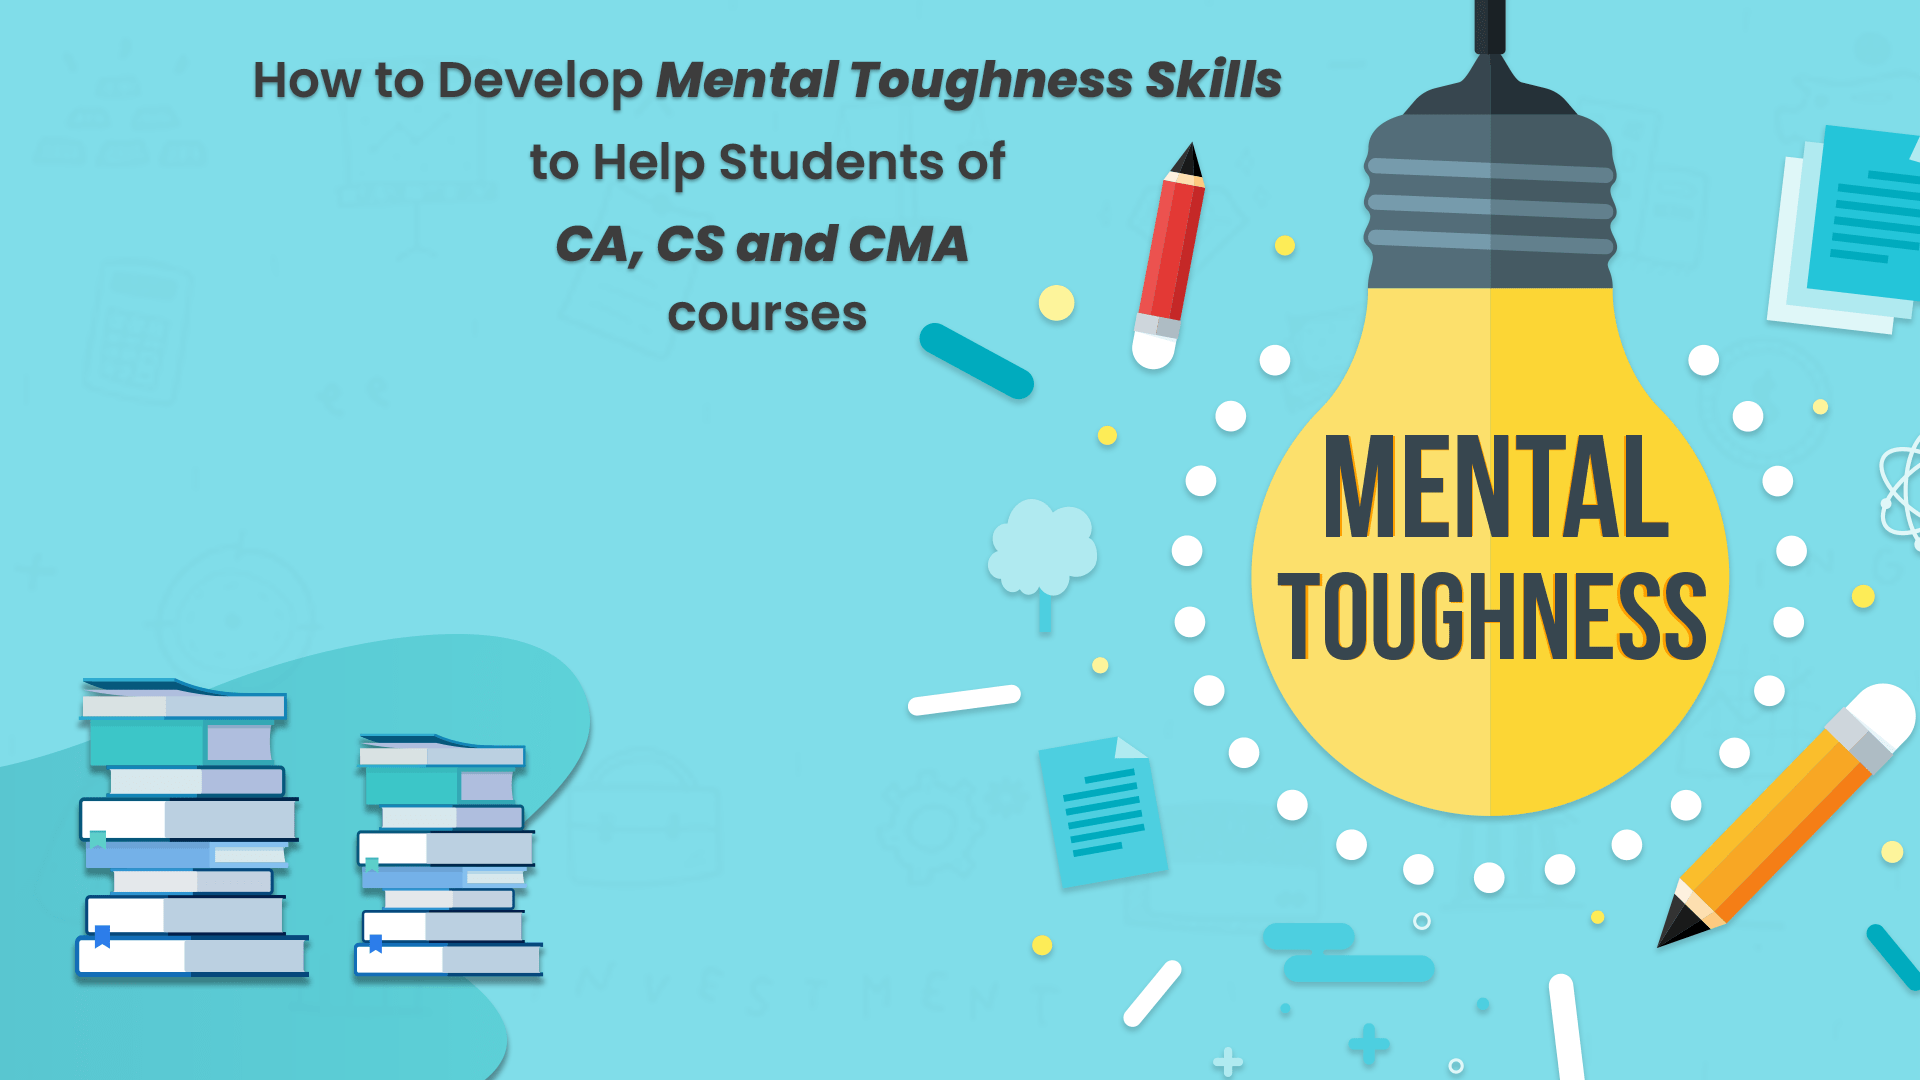 How to Develop Mental Toughness Skills for Students of CA, CS and CMA